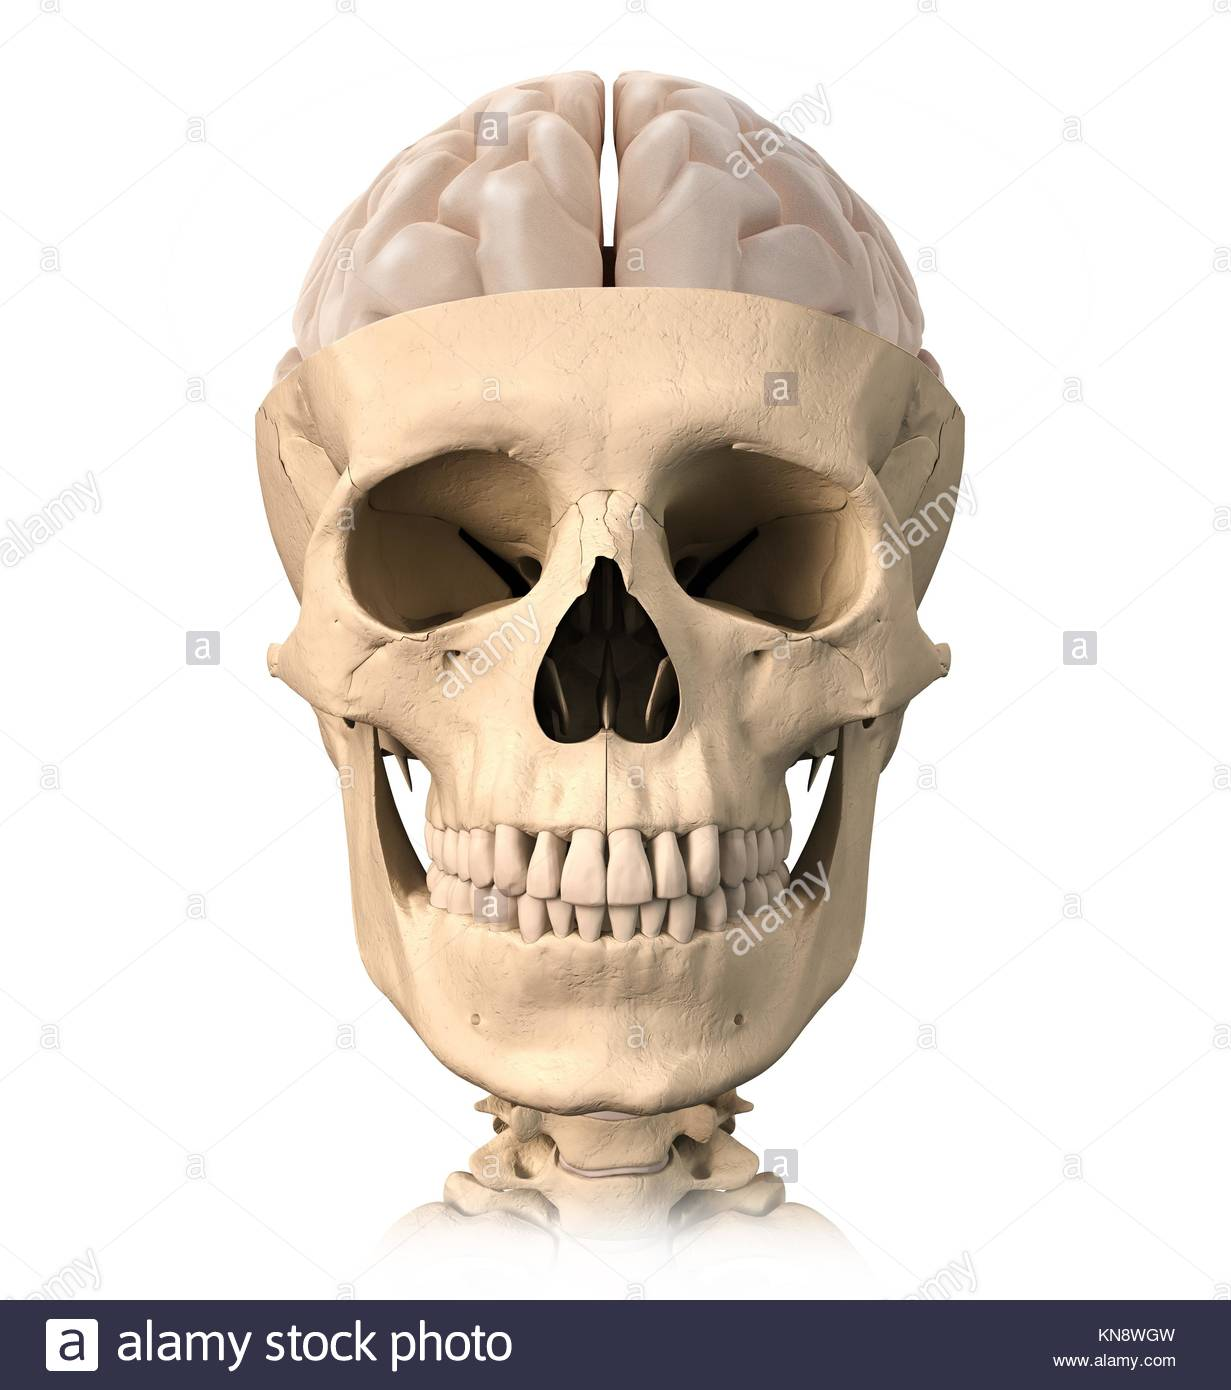 Anatomical Model Of Human Skull And Brain Stock Photos & Anatomical ...